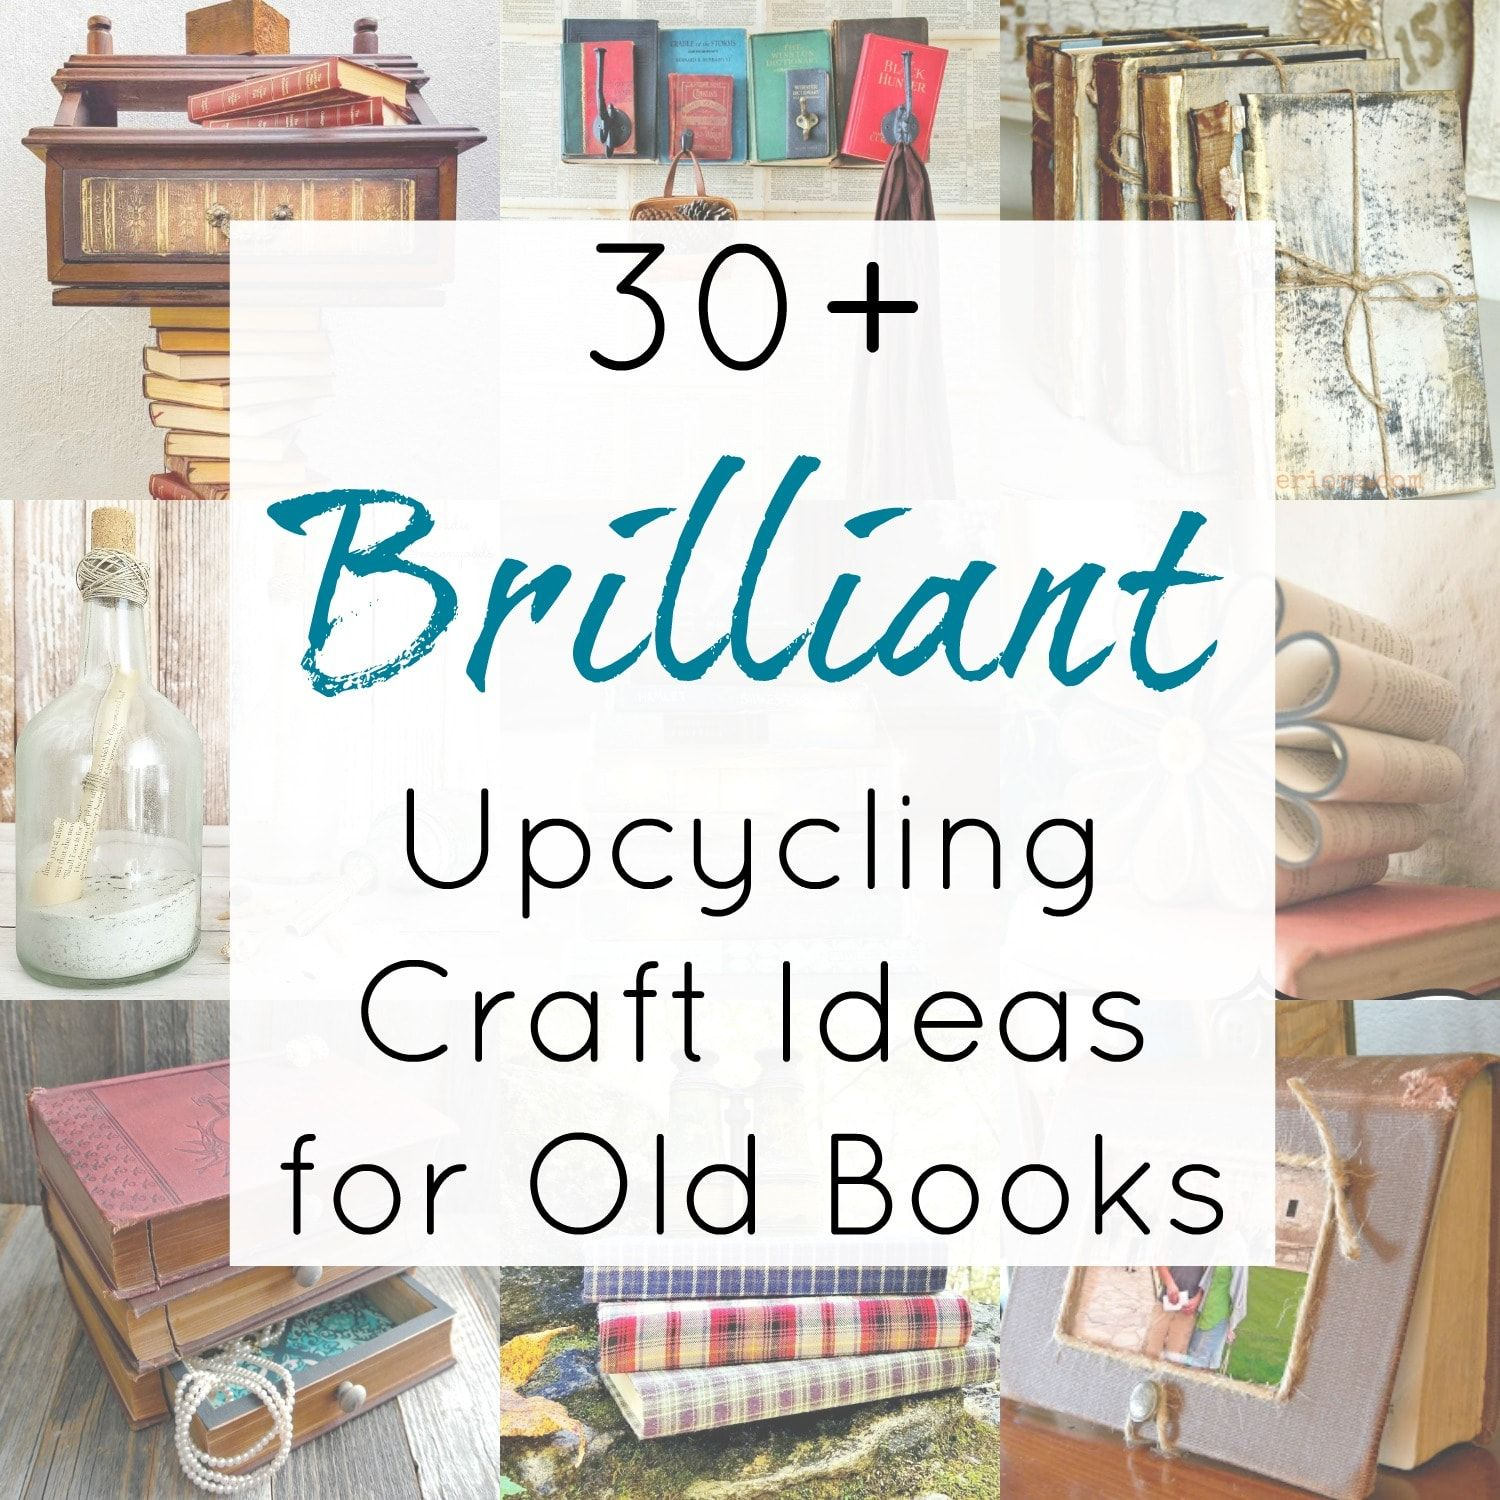 30 Upcycling Ideas For Old Books And Repurposed Book Craft Projects Upcycled Books Crafts Book Crafts Diy Old Book Crafts